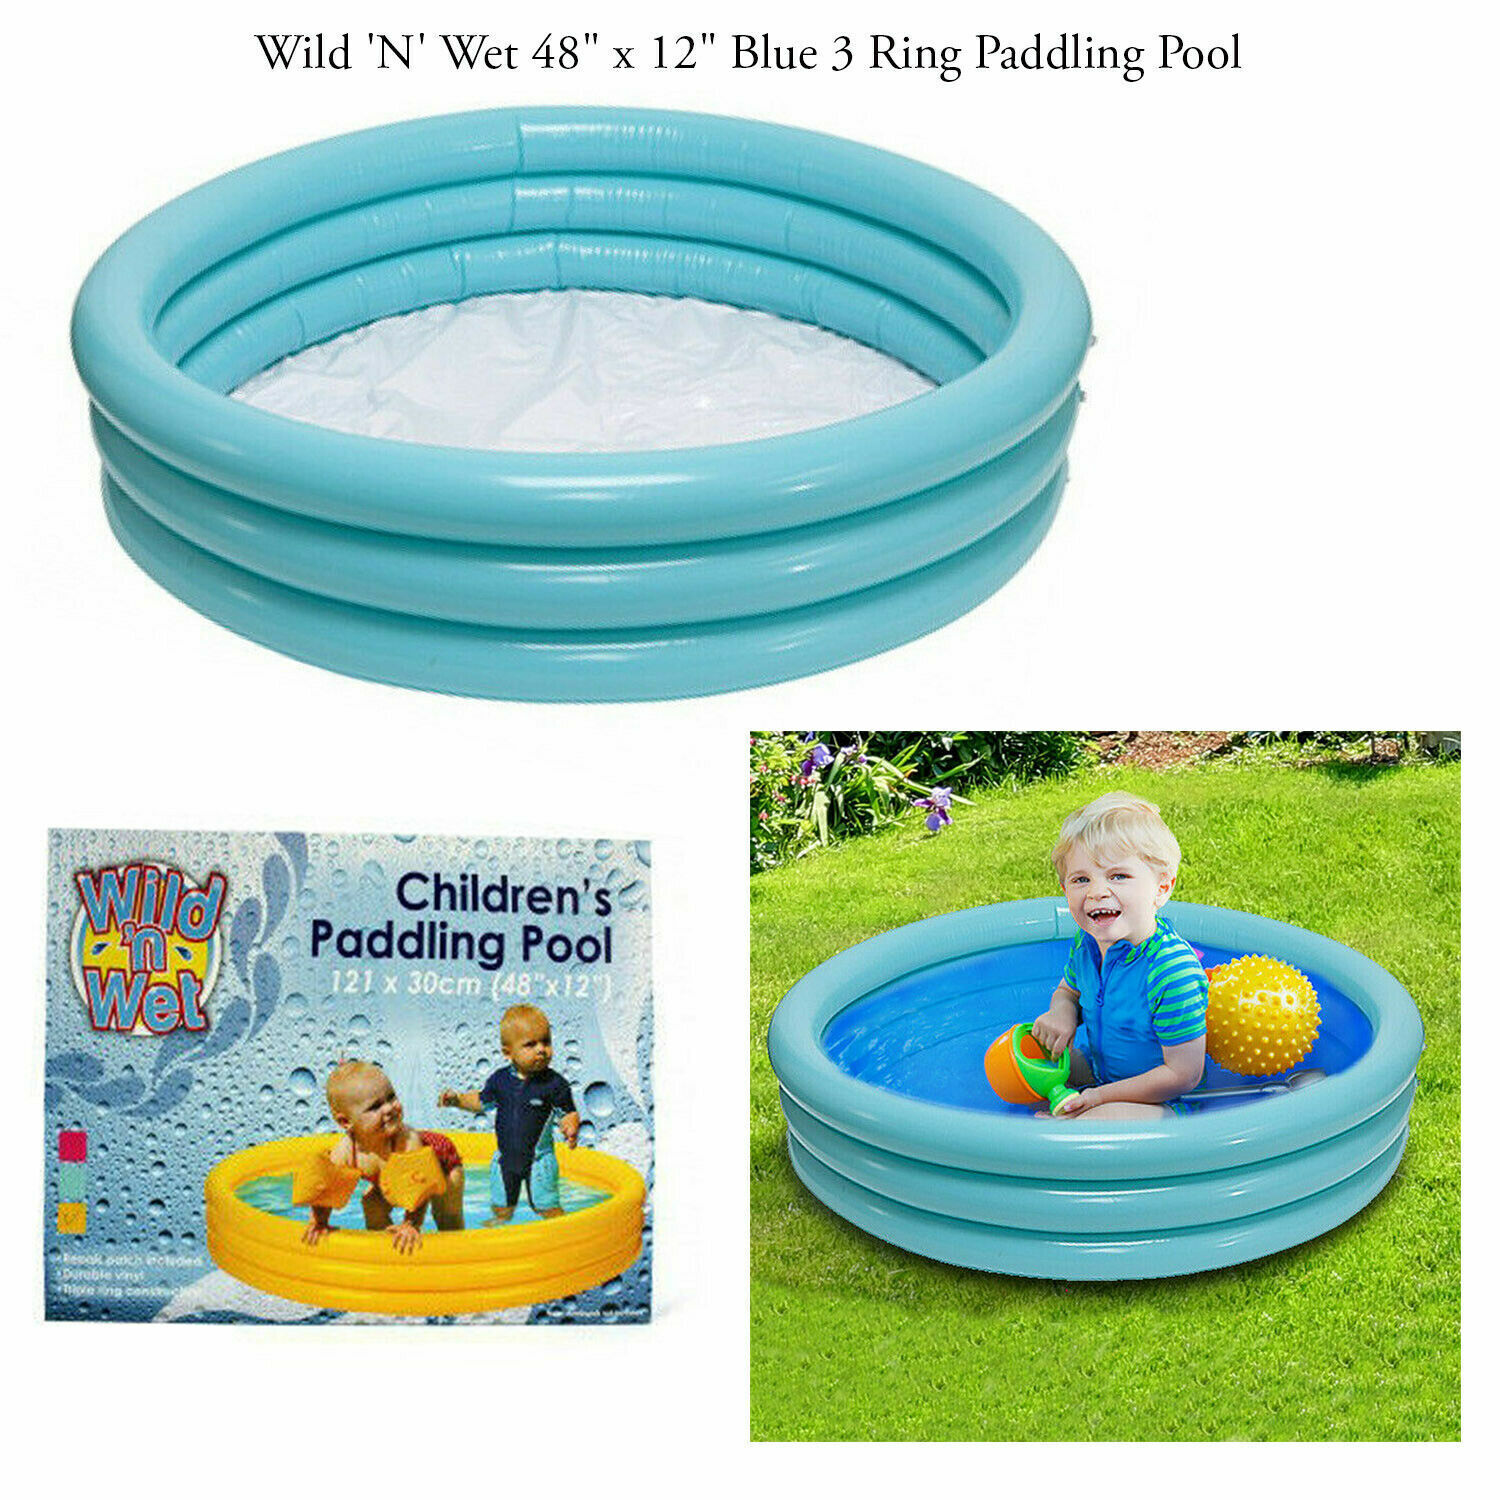 Kids Toddlers 48 x 12 Inch Blue 3 Ring Summer Garden Paddling Swimming Pool Toy